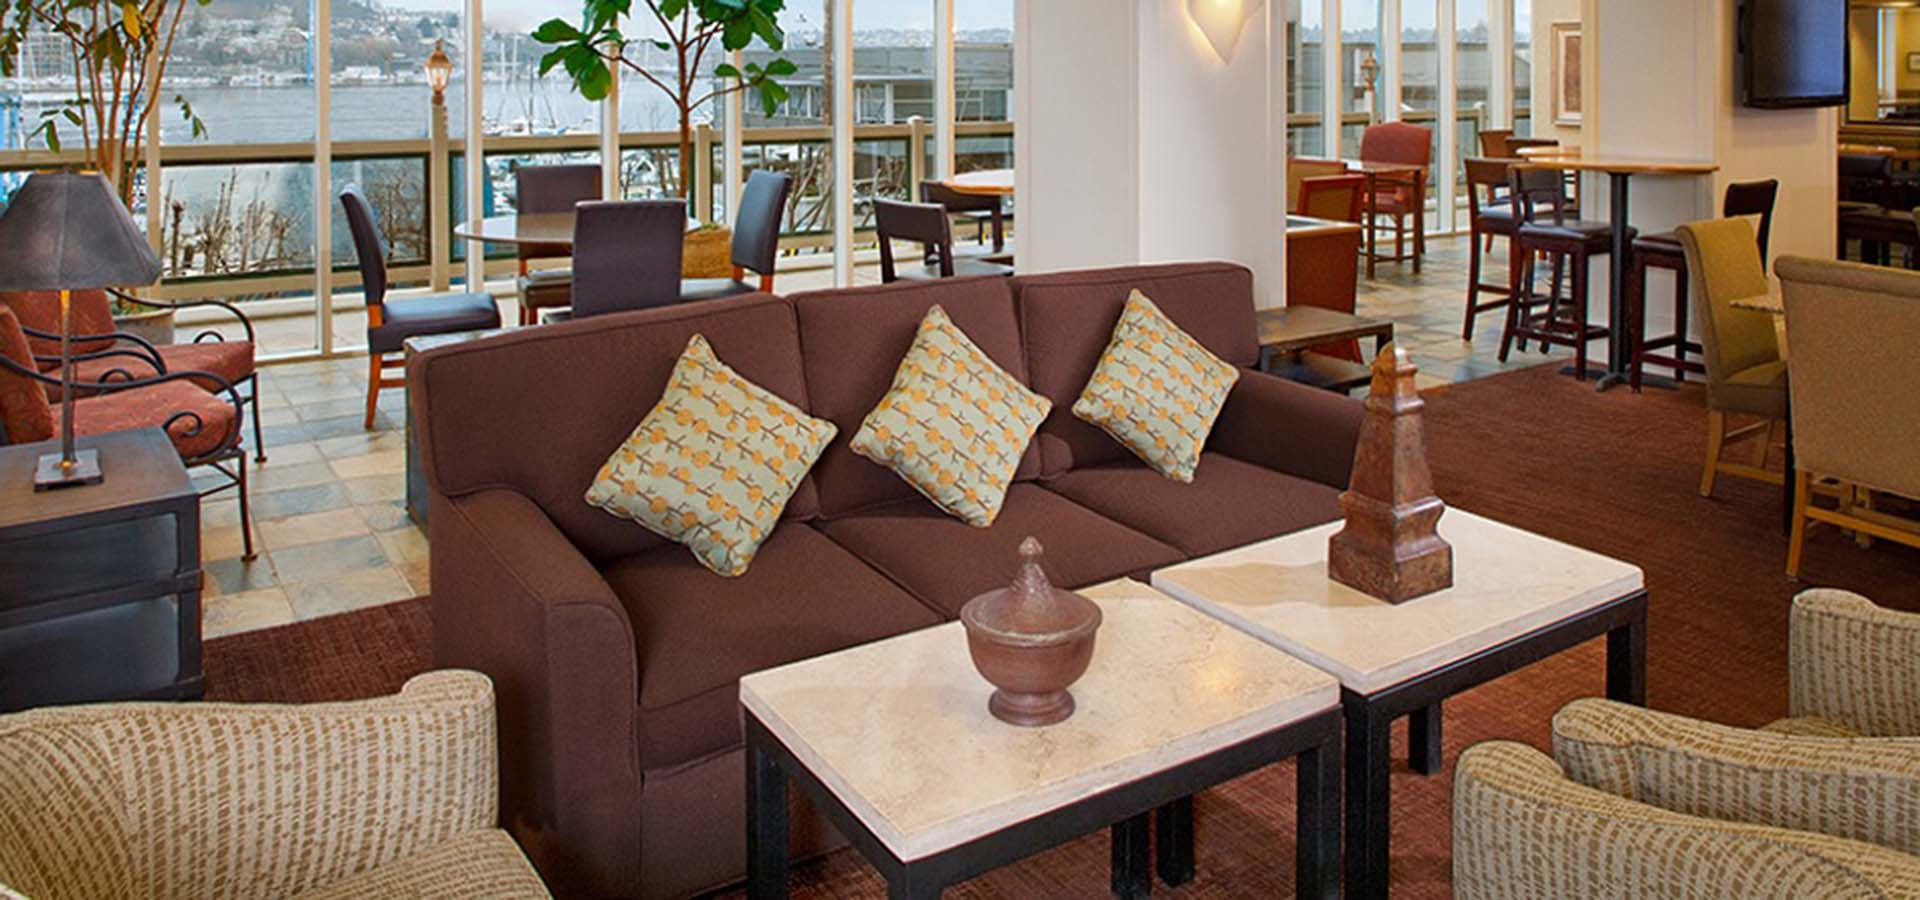 Inside of a hotel lobby with seating areas.